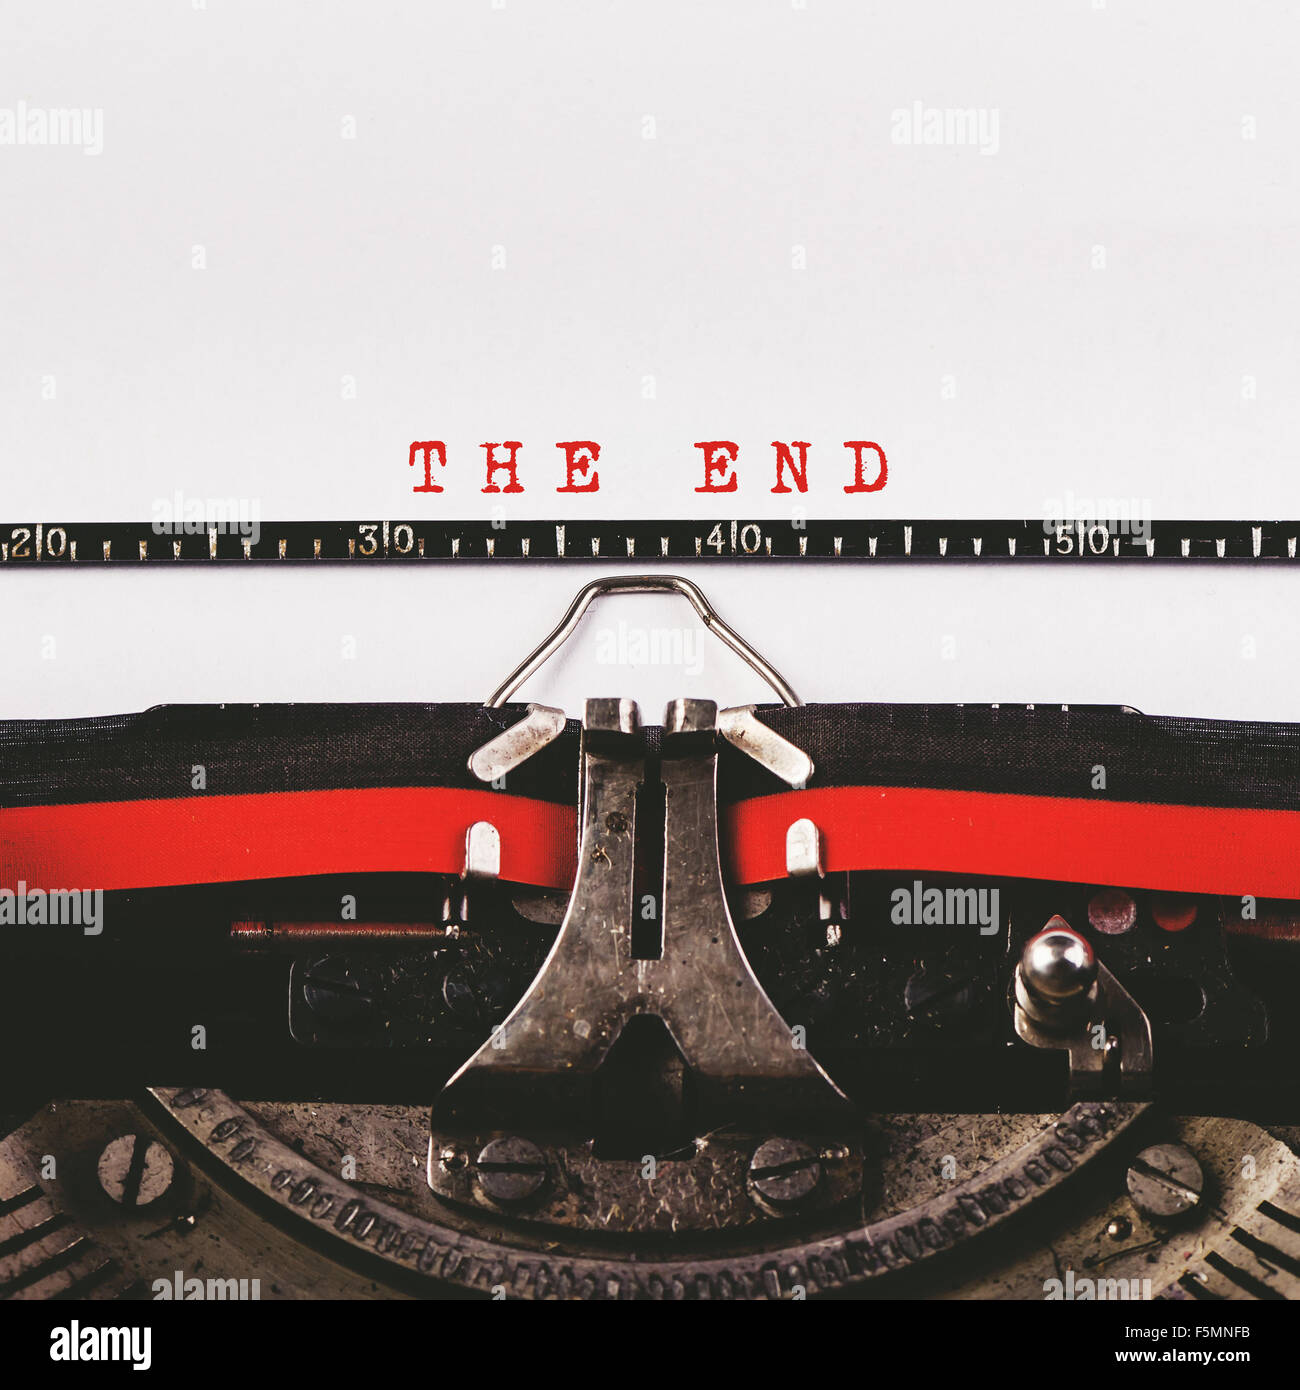 The End text on old typewriter, retro toned conceptual image - Stock Image